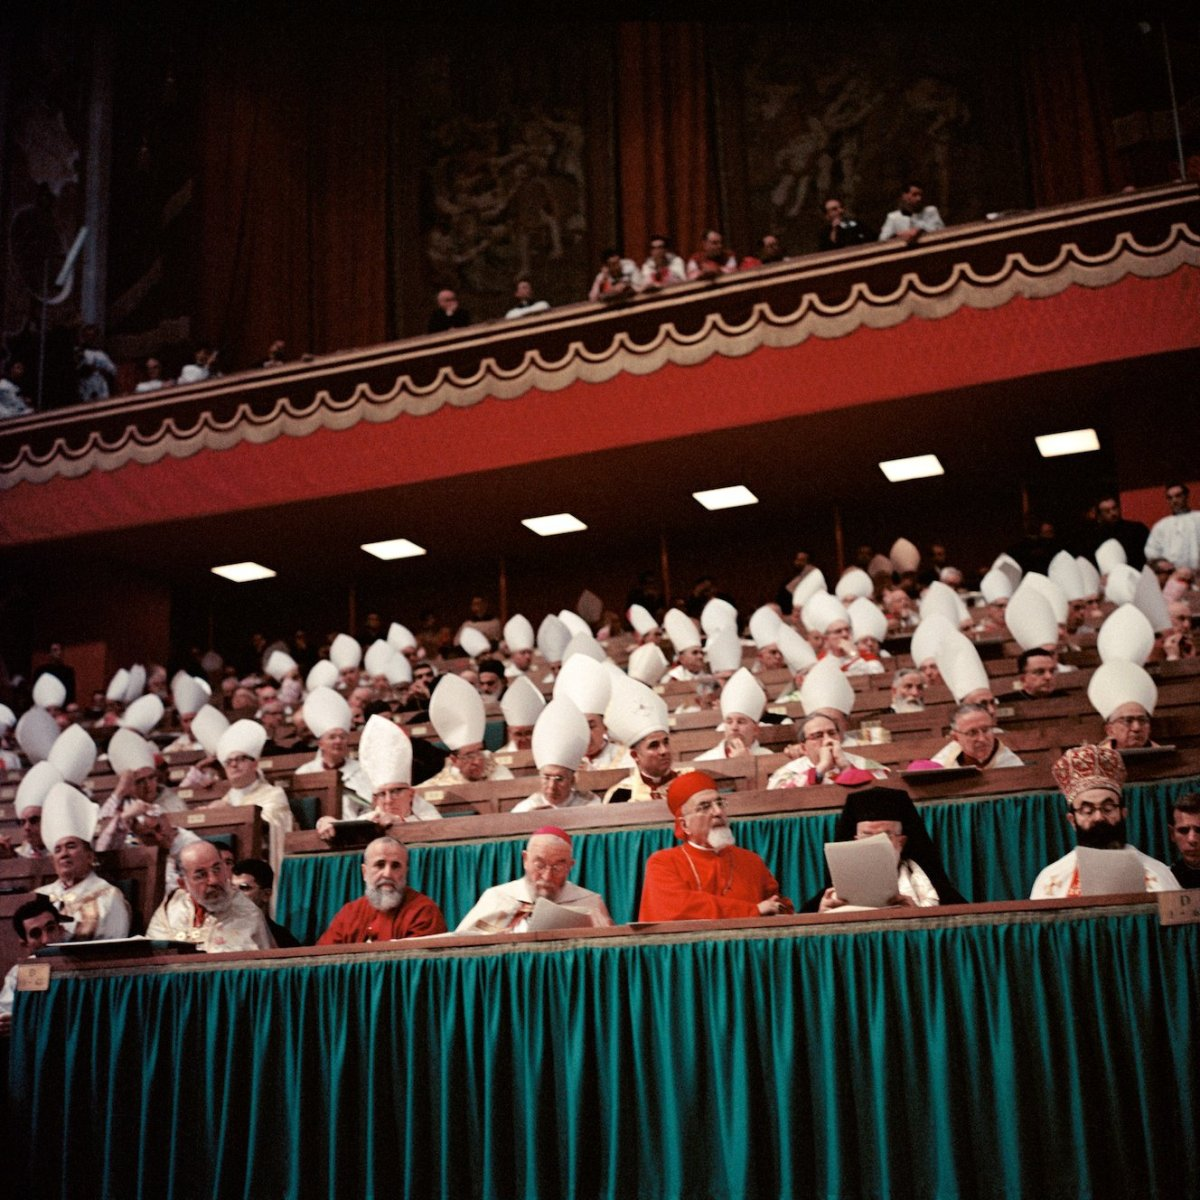 How did Vatican II change the Catholic Church?